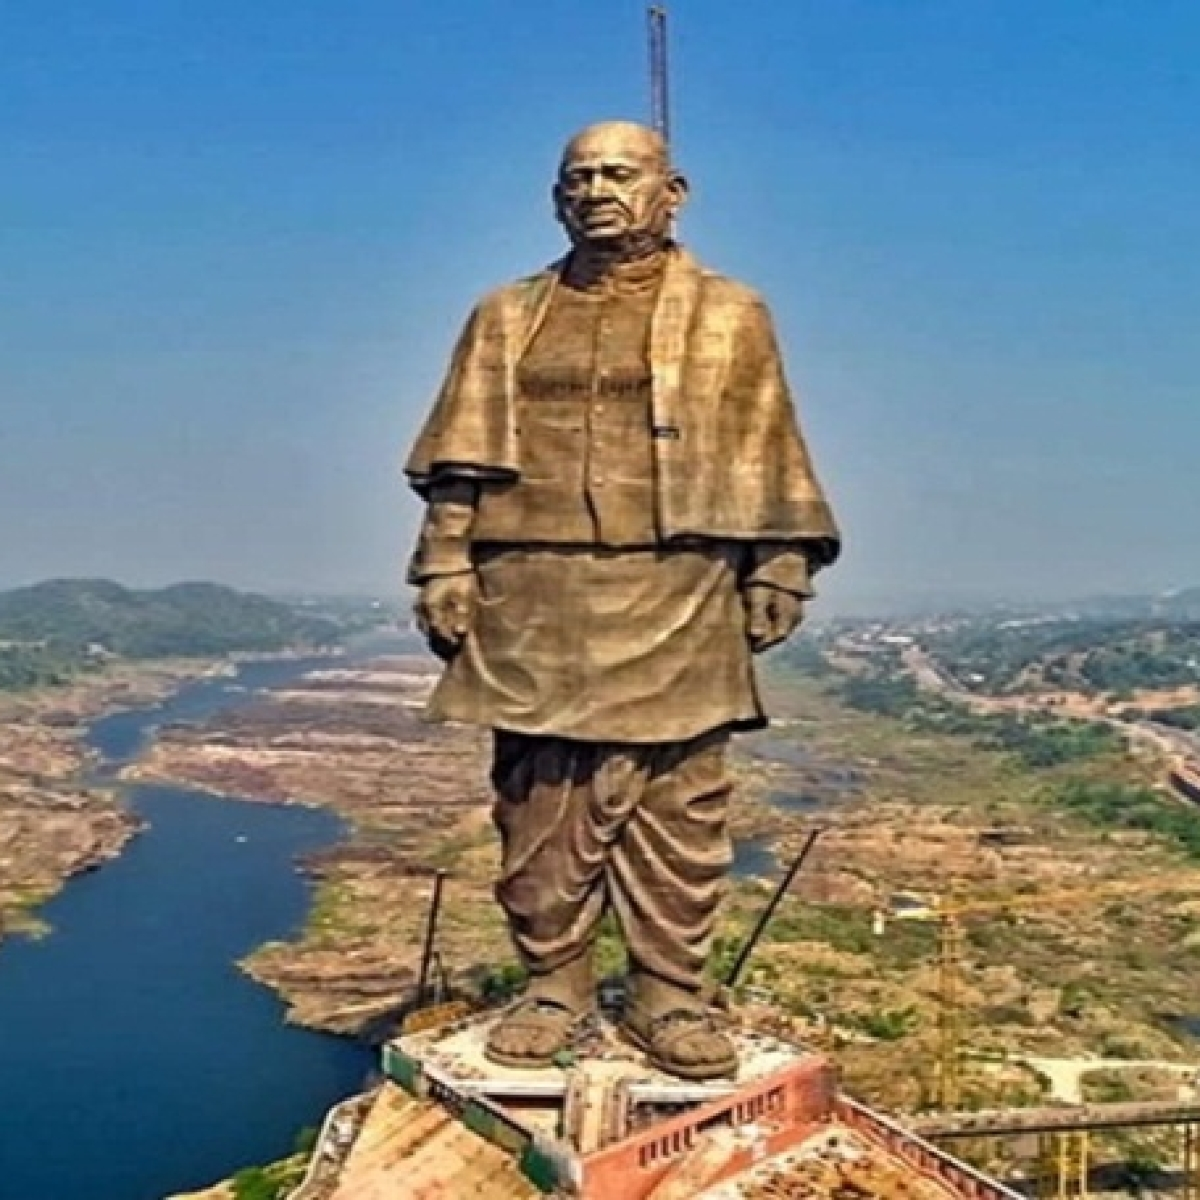 After advertisement 'selling' Statue of Unity on OLX, case registered against unknown person in Gujarat